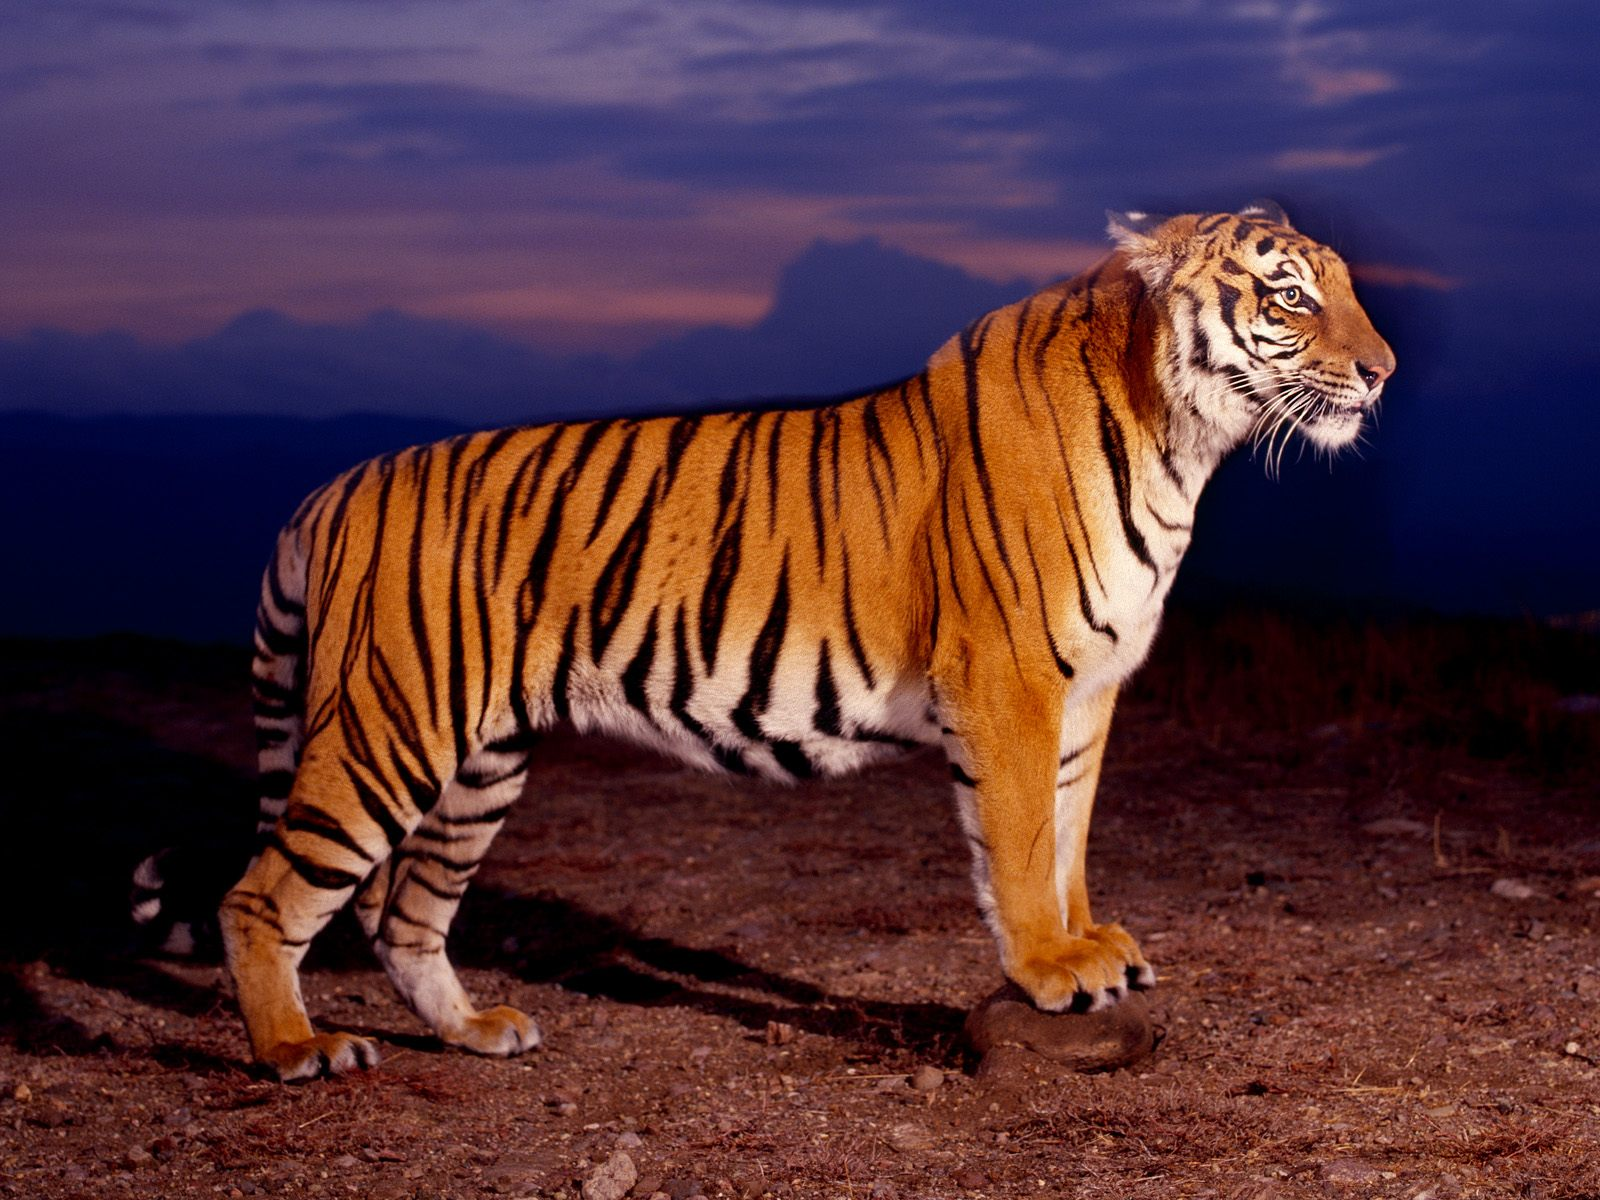 Tiger Hd Wallpapers